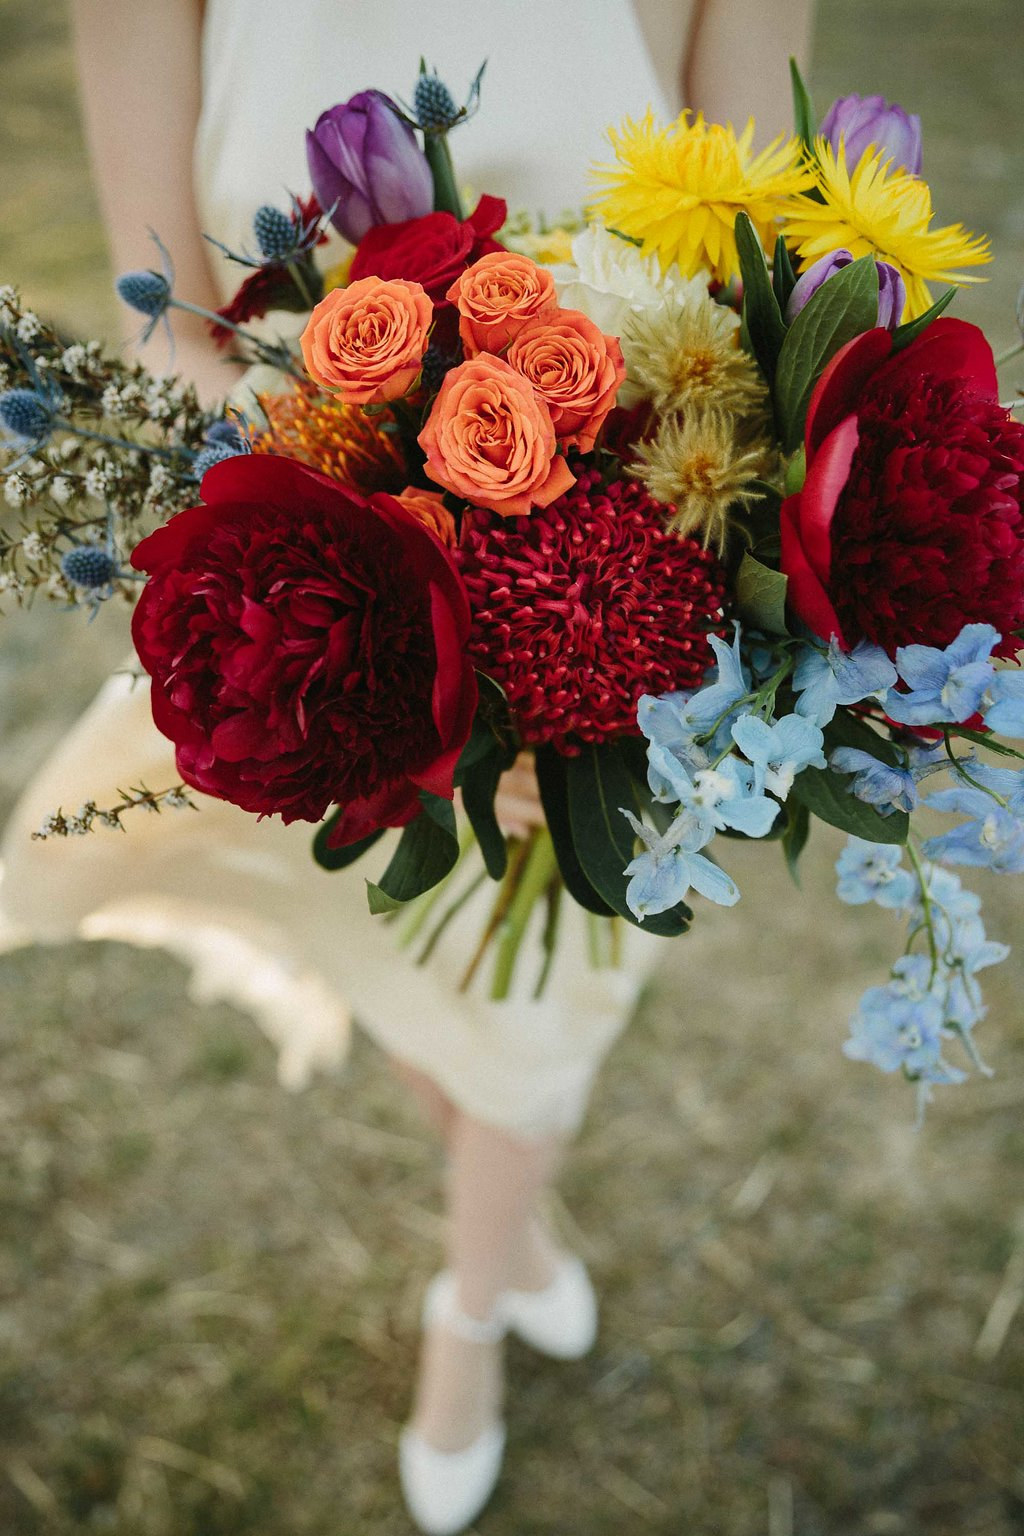 Tips to choosing your wedding florist